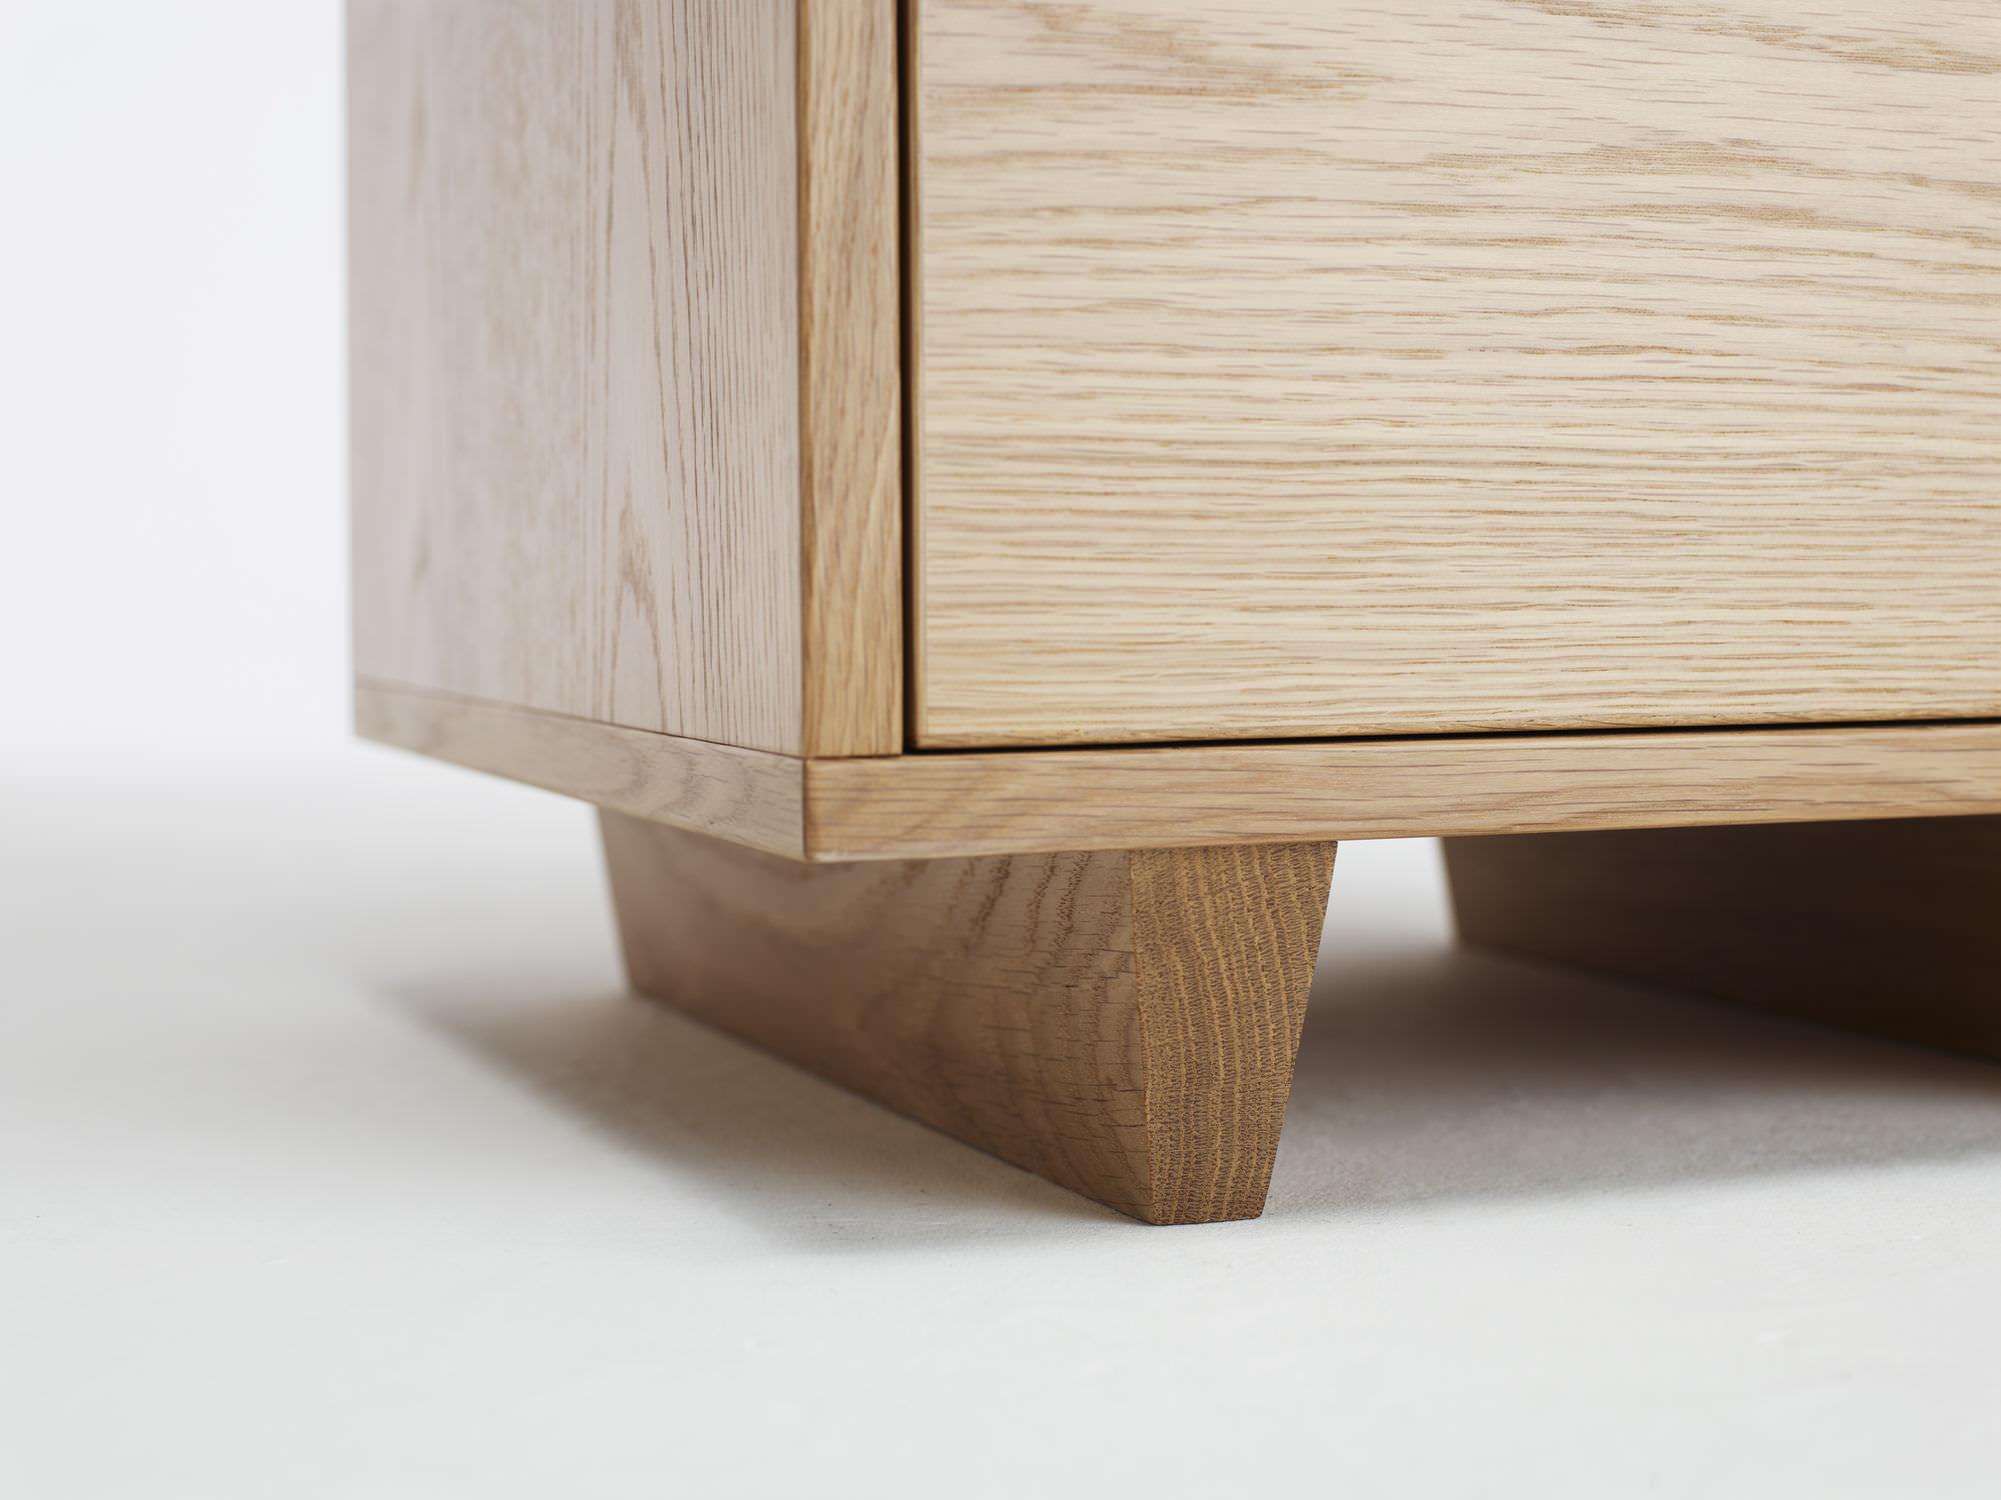 Contemporary chest of drawers   oak   ash   MDF MAY by Patrik Hansson  KARL ANDERSSON. Contemporary chest of drawers   oak   ash   MDF   MAY by Patrik